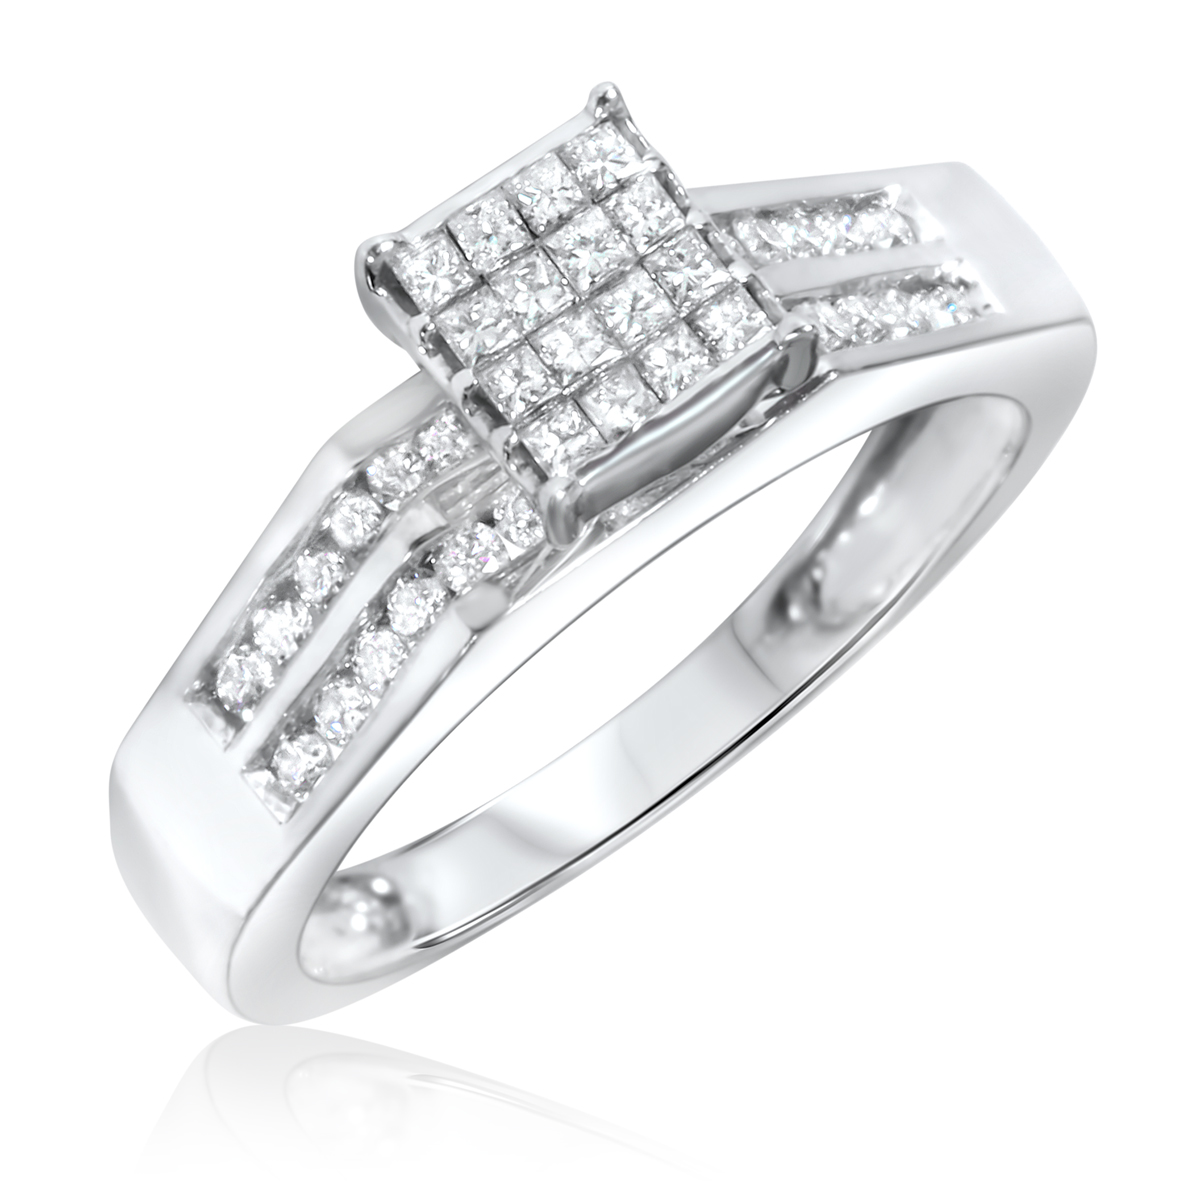 1 Carat Diamond Trio Wedding Ring Set 14k White Gold My Trio